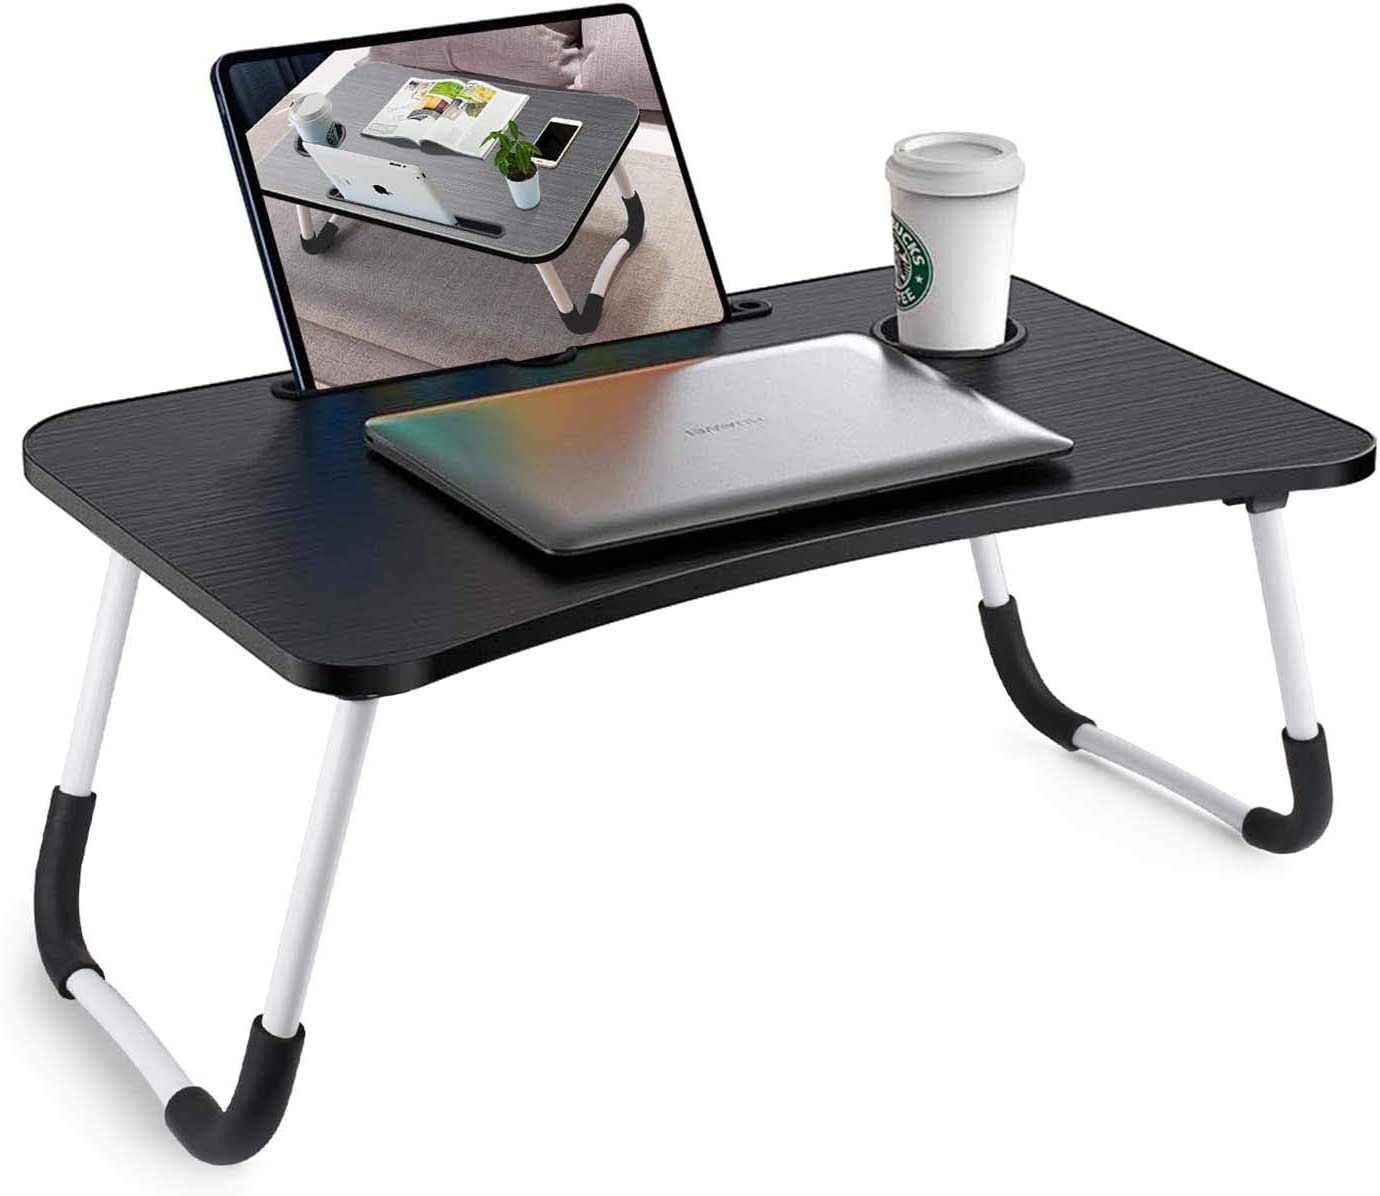 Foldable Bed Tray Lap Desk, Portable Lap Desk with Phone Slots Notebook Table Dorm Desk, Small Desk Folding Small Dormitory Table (Black)